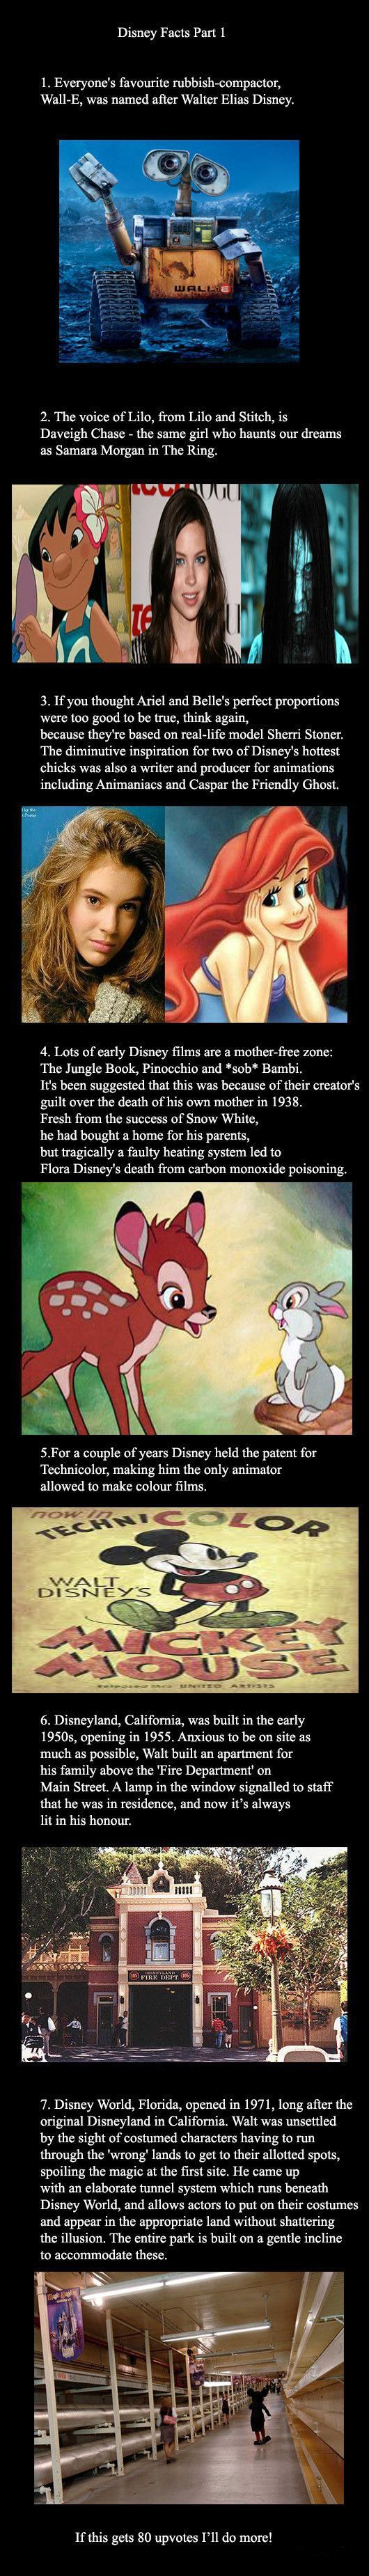 A few interesting Disney facts - Meme Collection